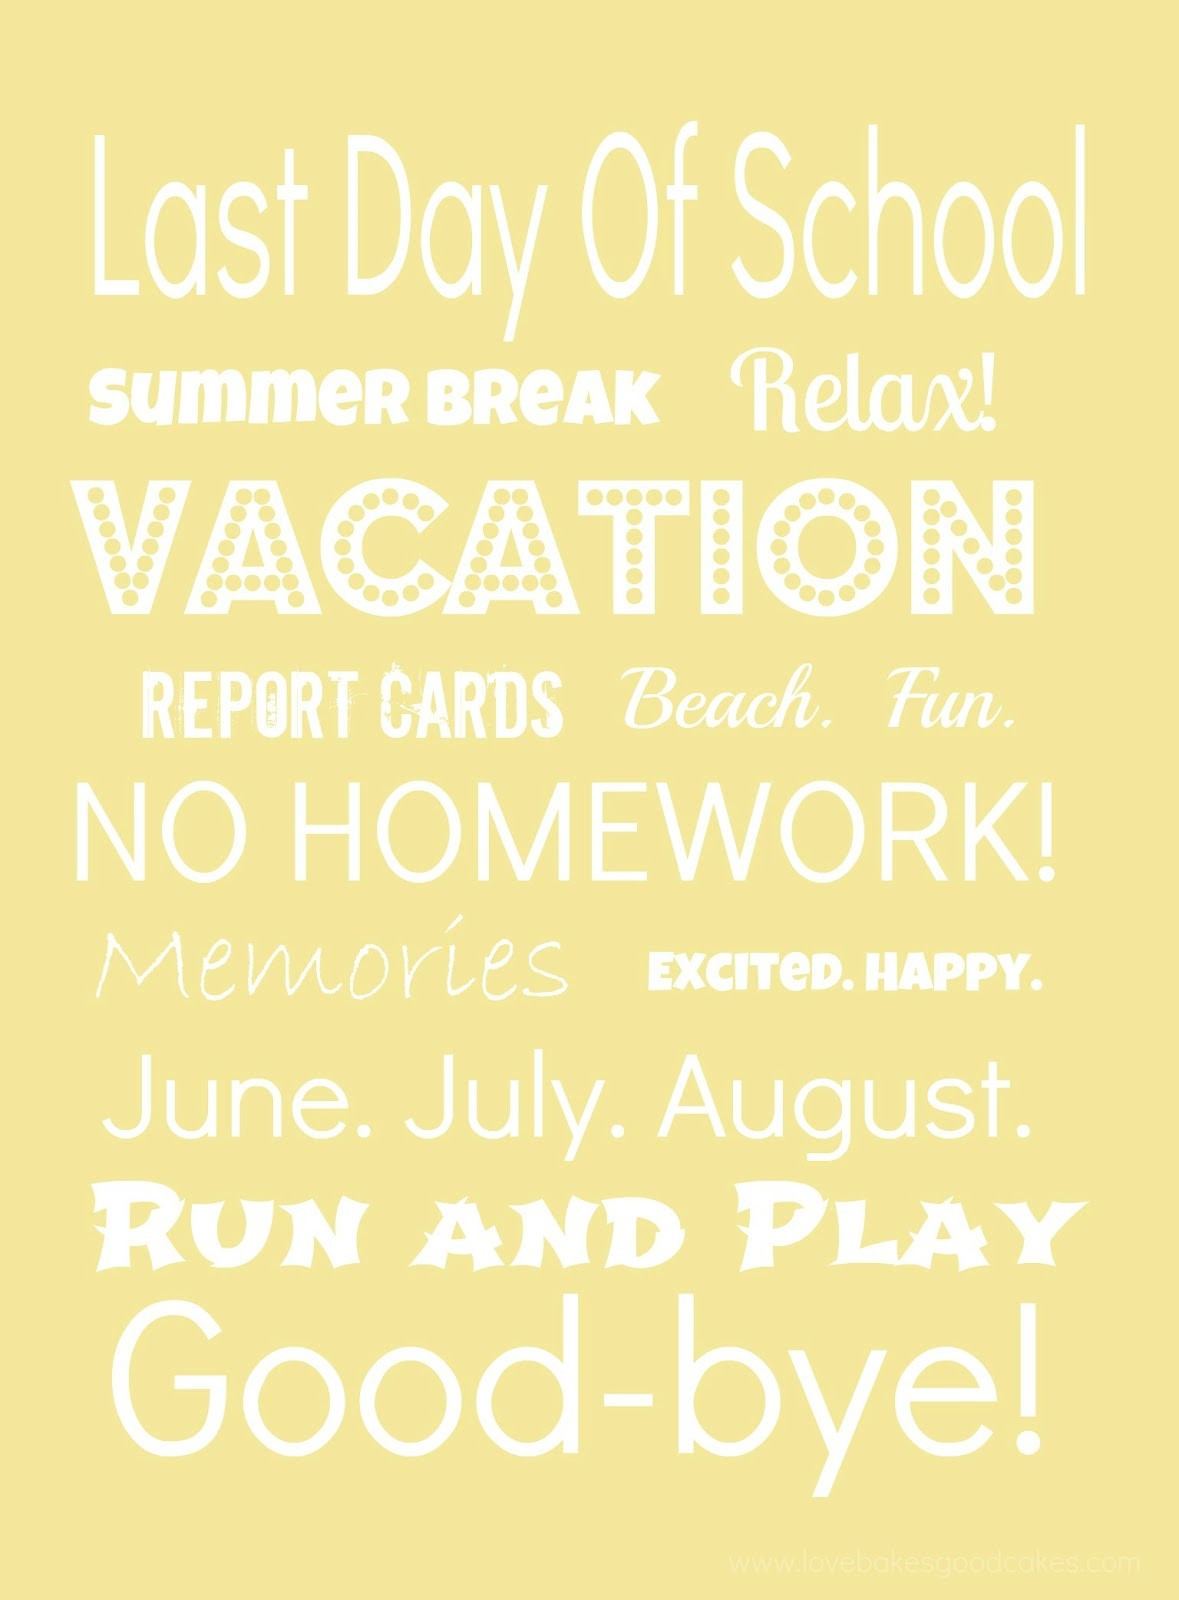 Last day of school printable subway art